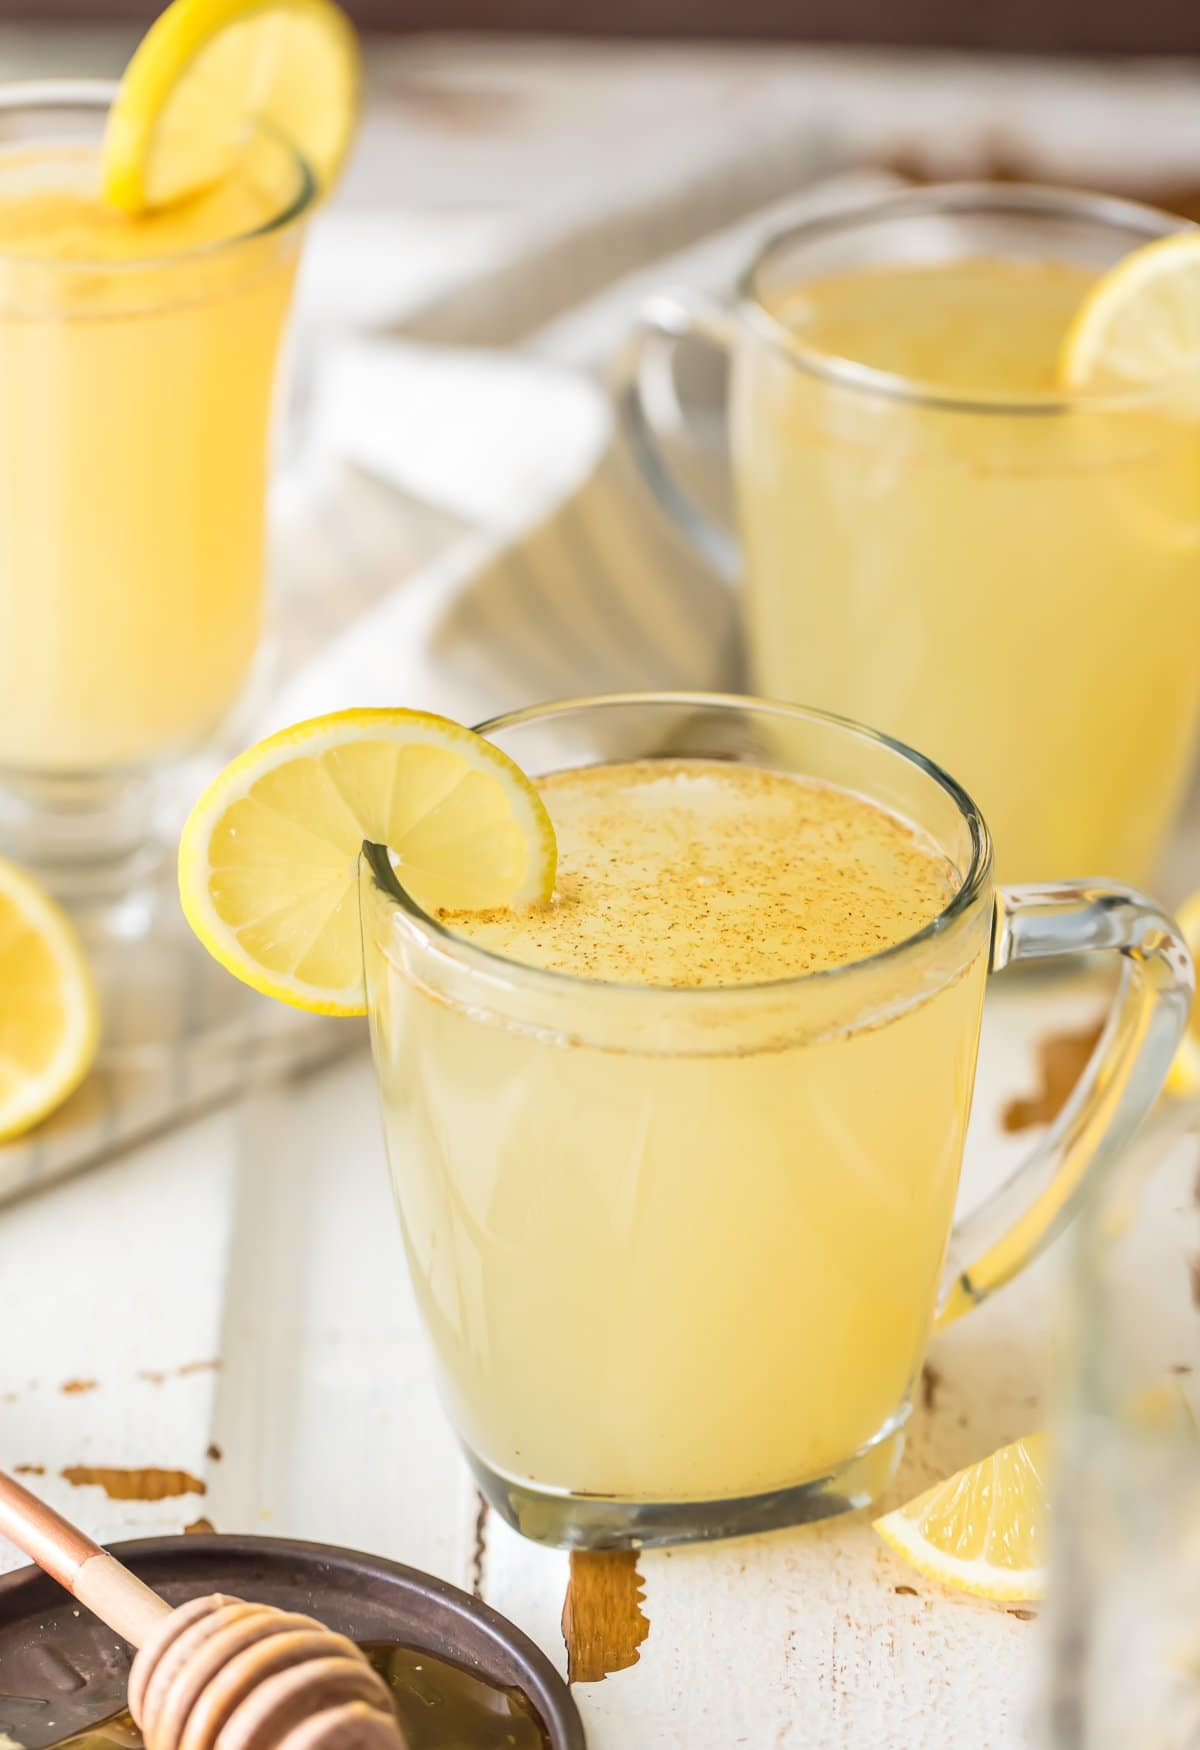 Homemade Lemon Detox Recipe: lemon juice, hot water, ginger, cayenne